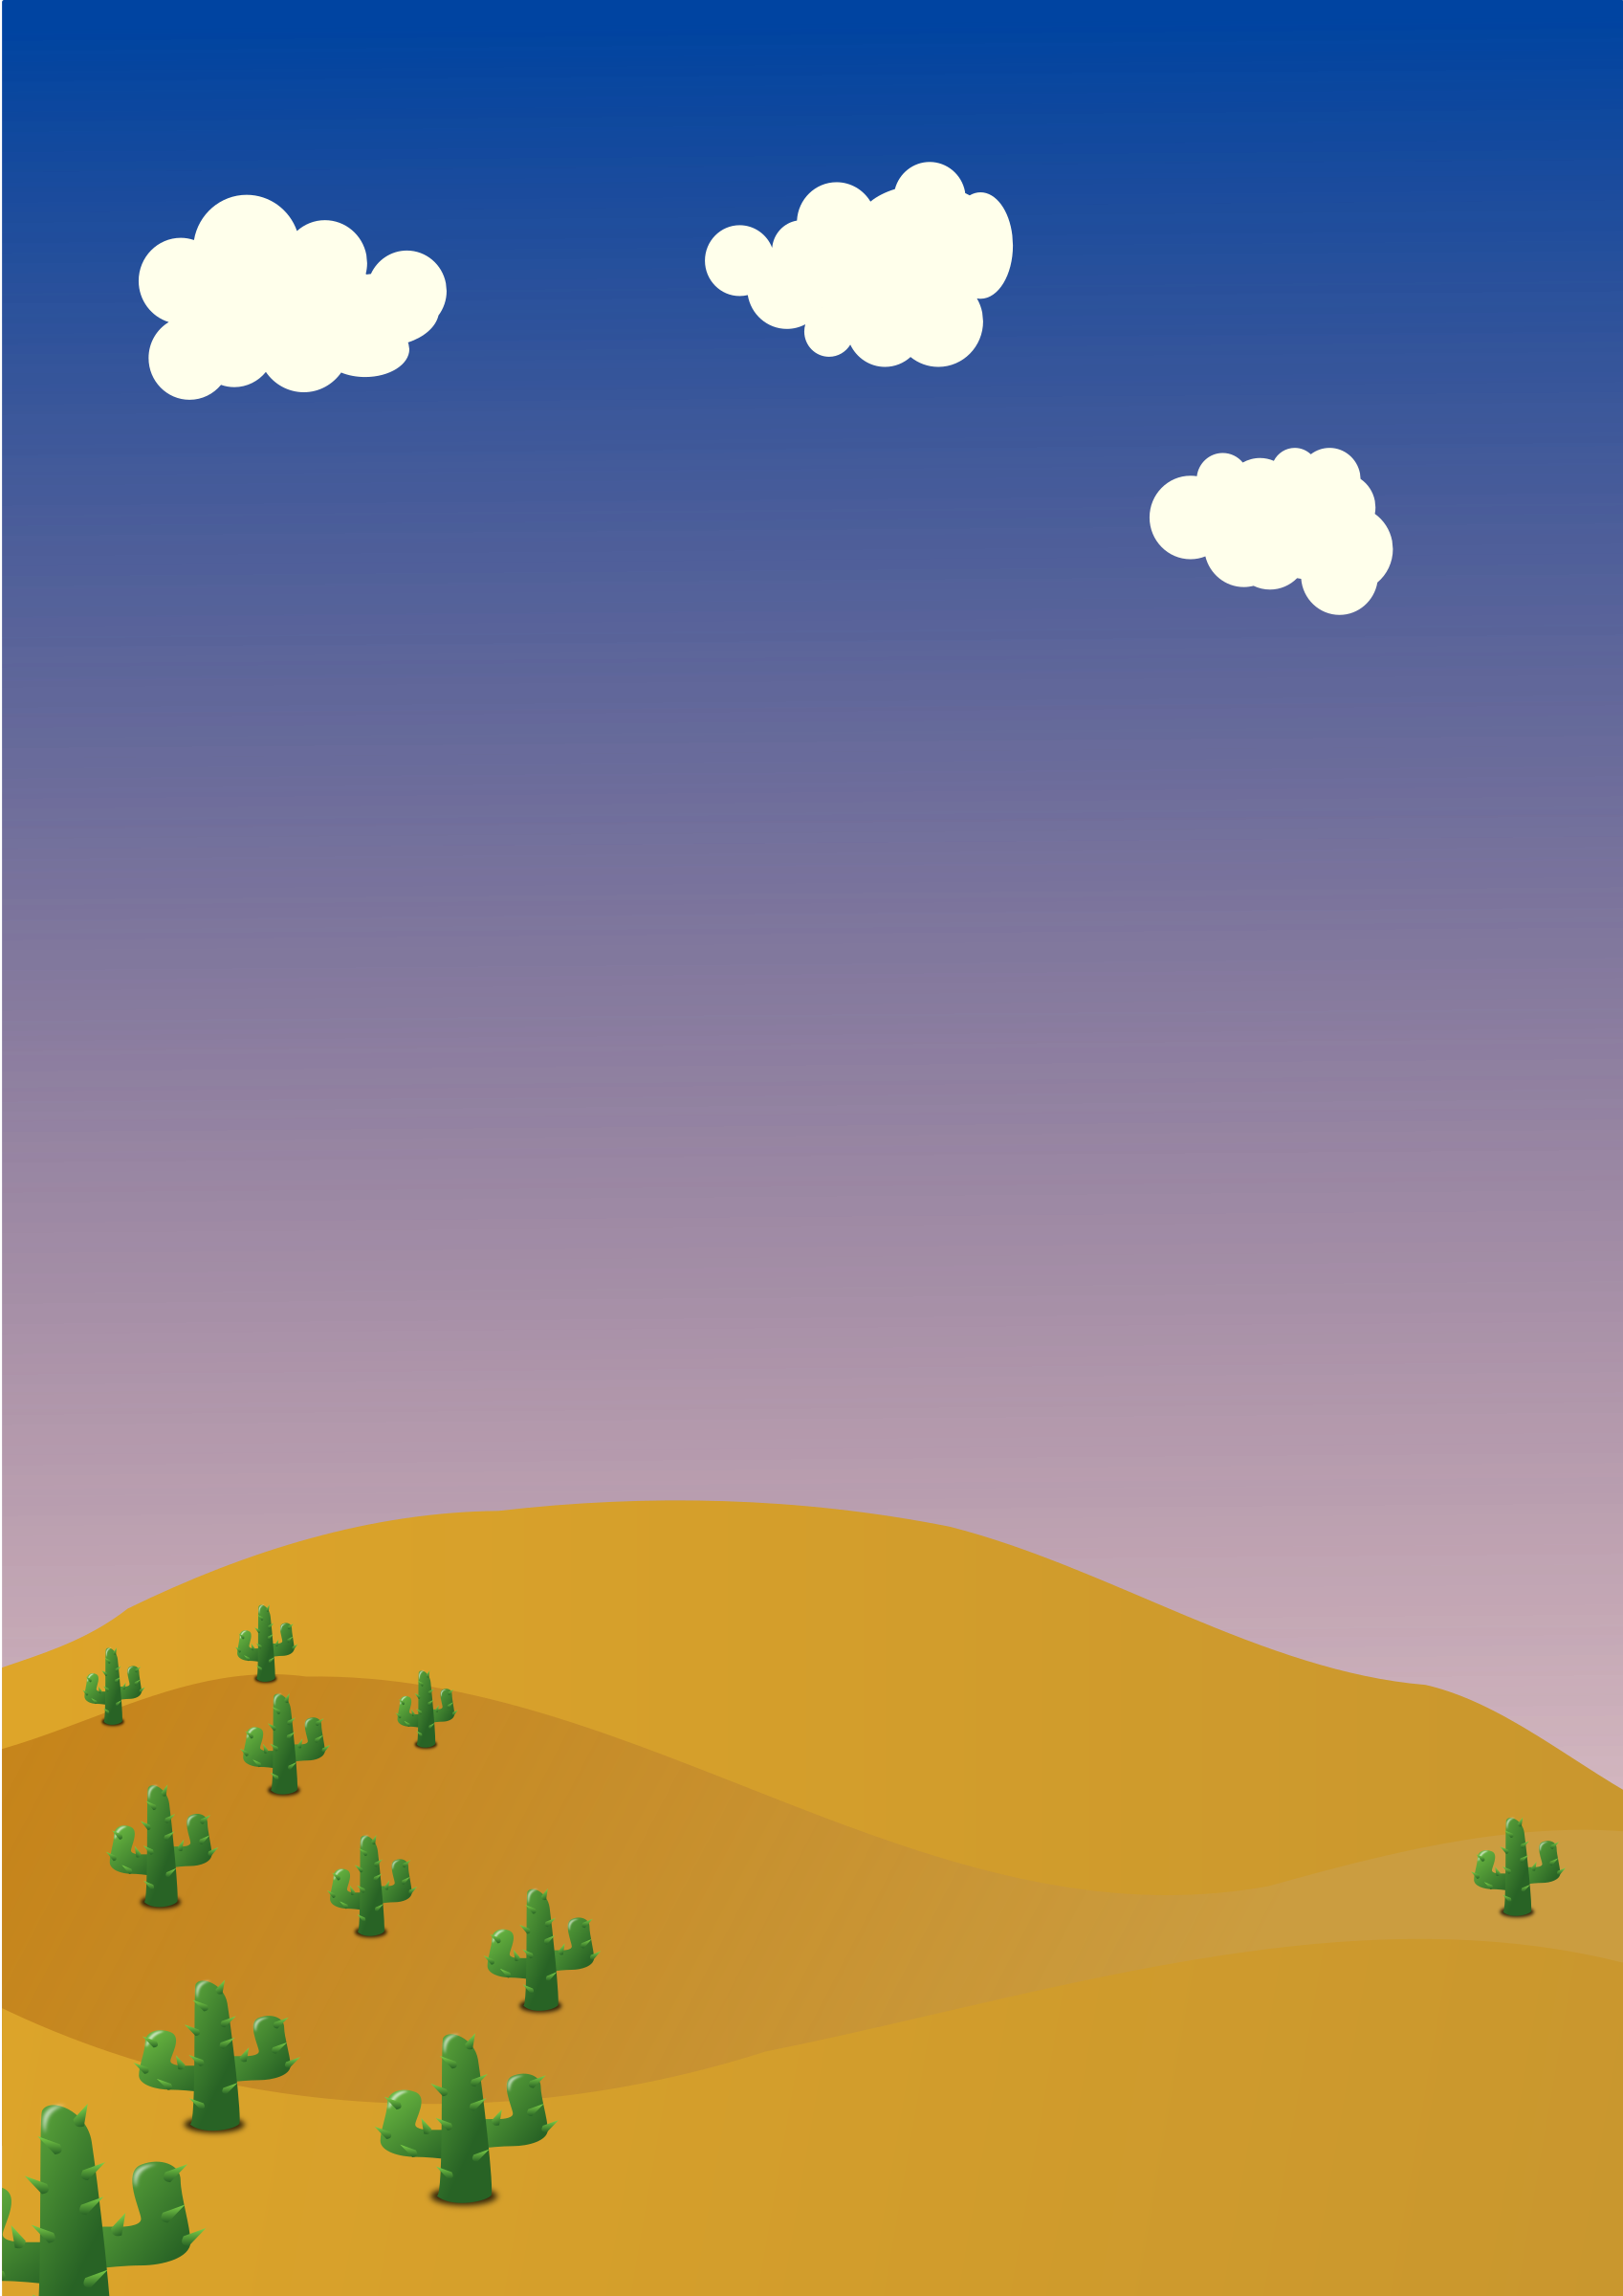 Desert background by hatso1